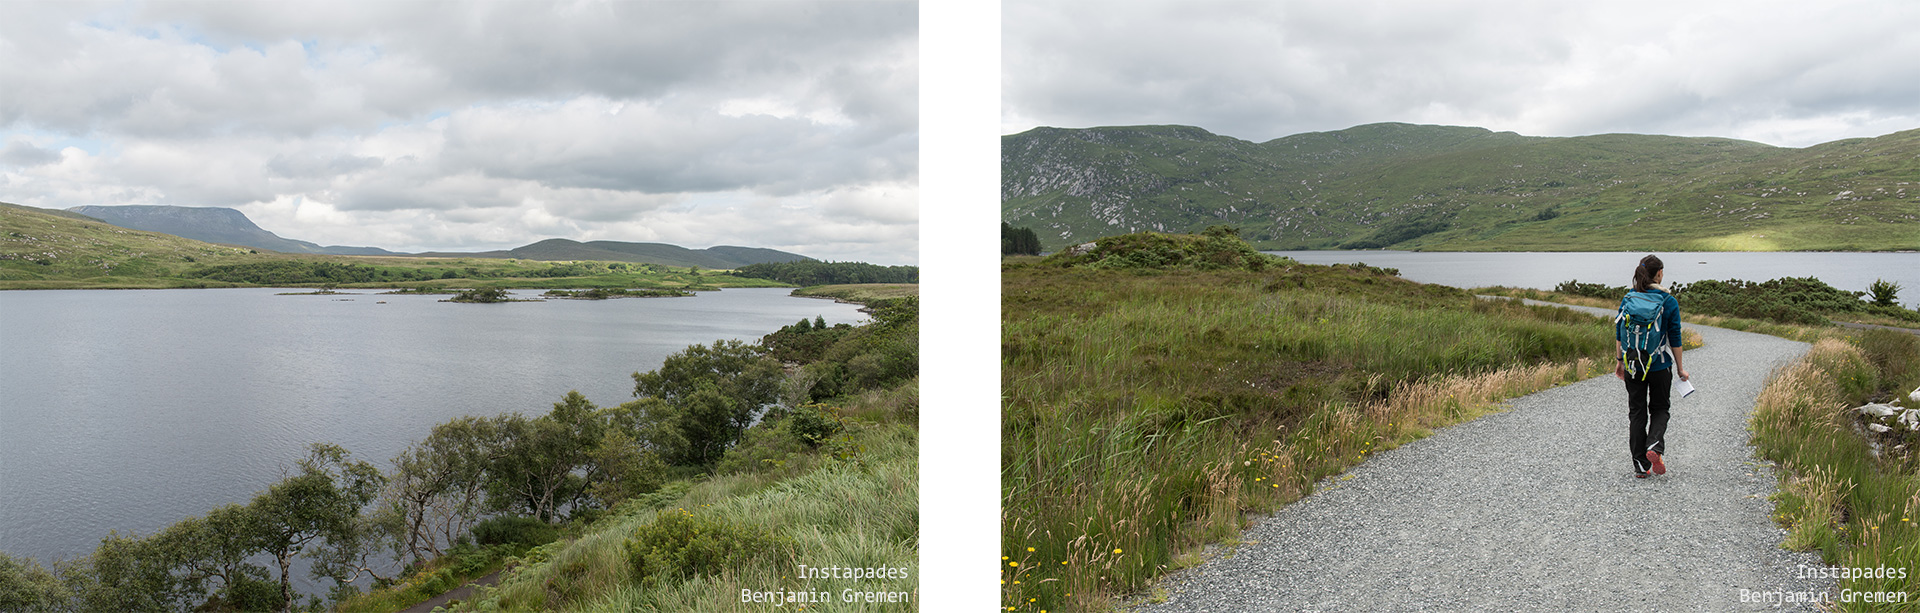 j6-gleenveagh-national-park-7730